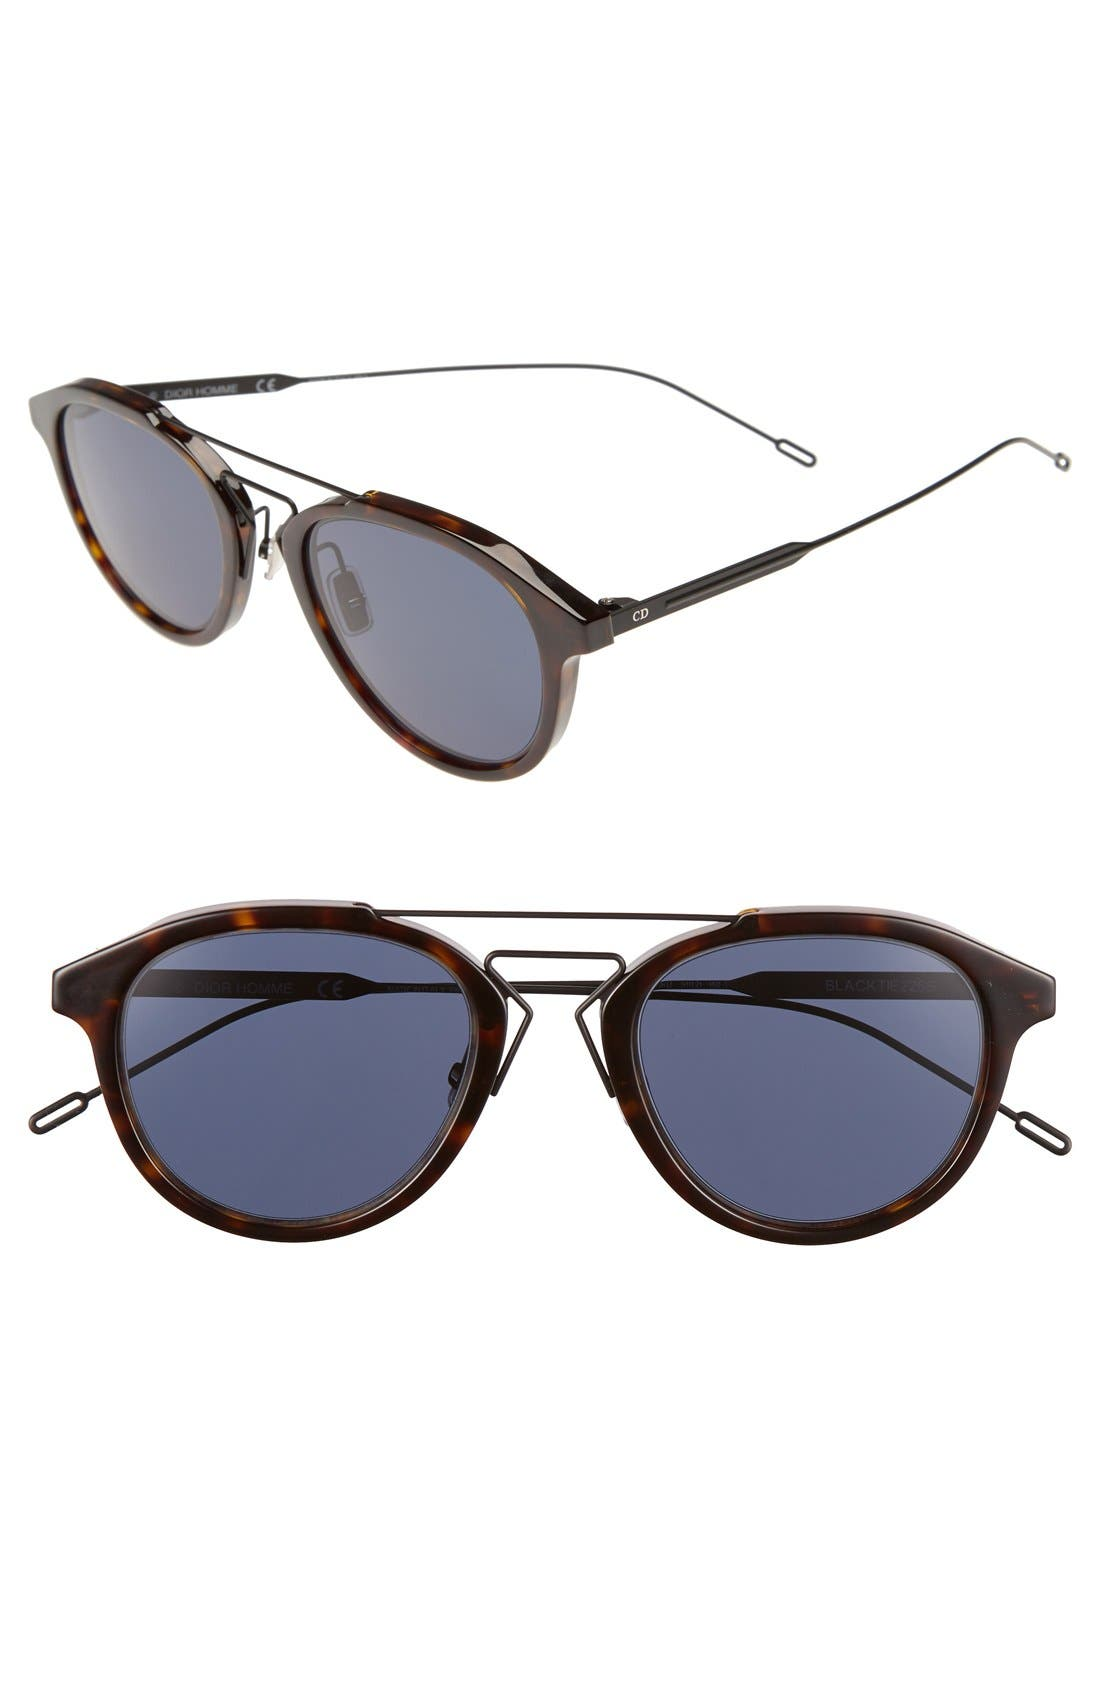 52mm 'Black Tie' Sunglasses,                         Main,                         color,